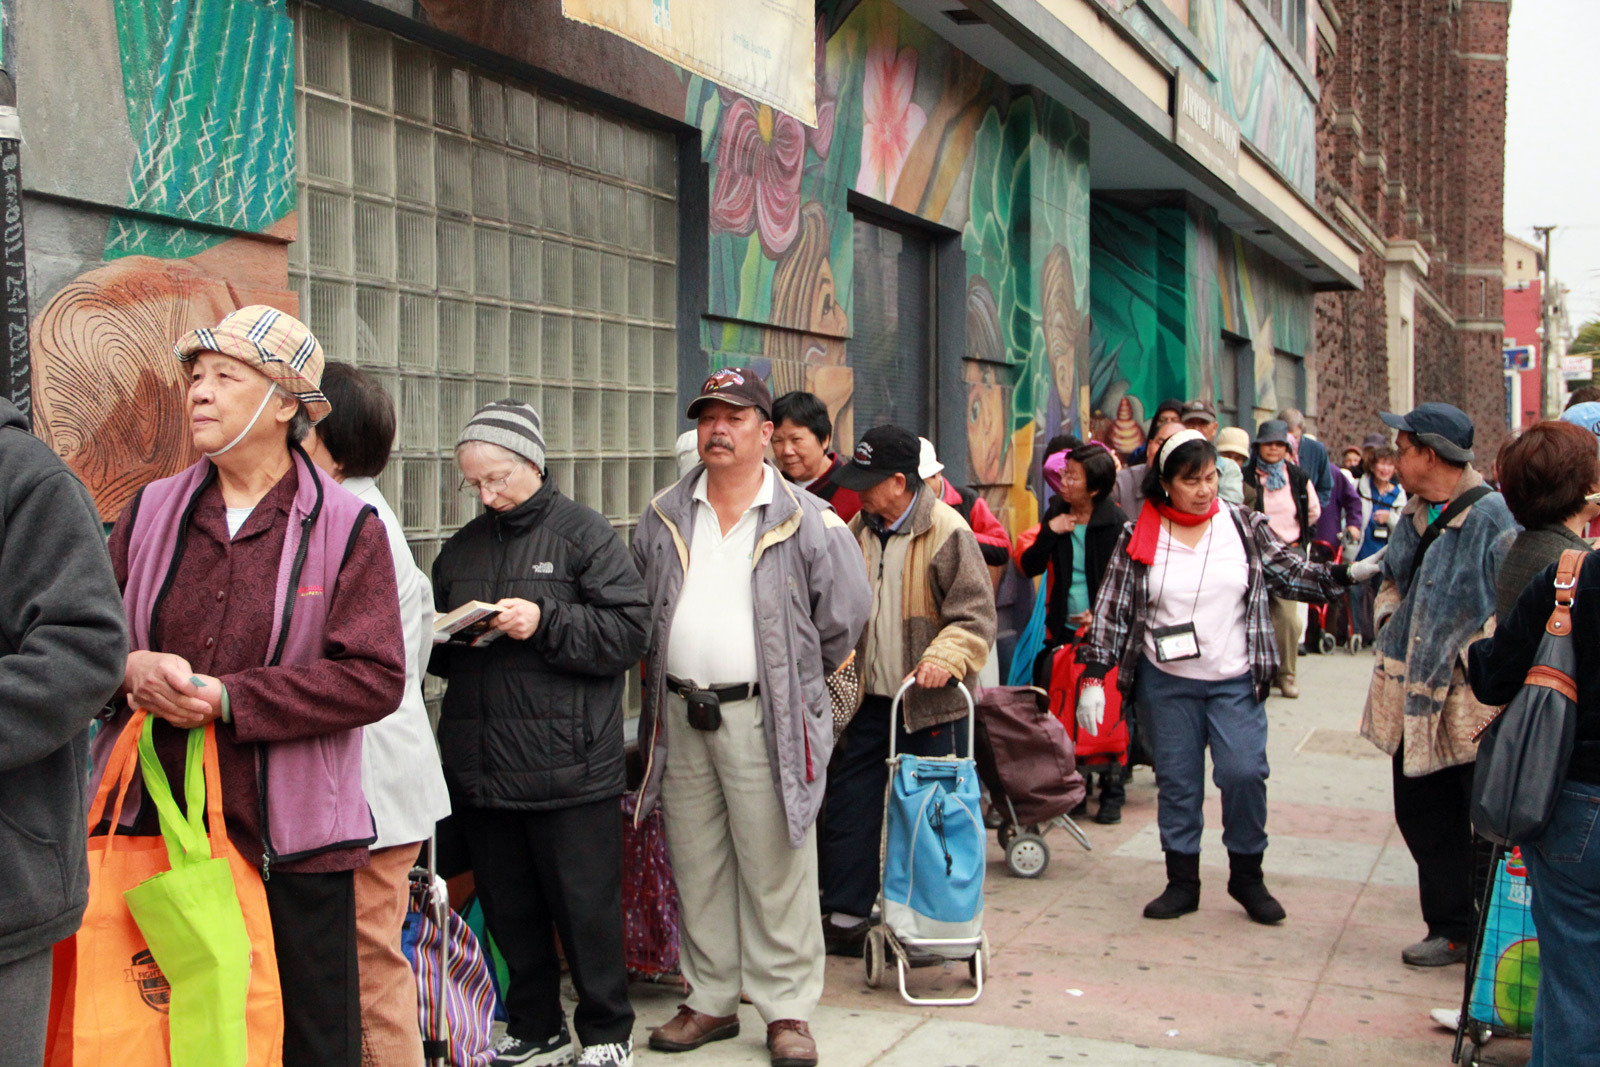 People queueing outside the Food Pantry